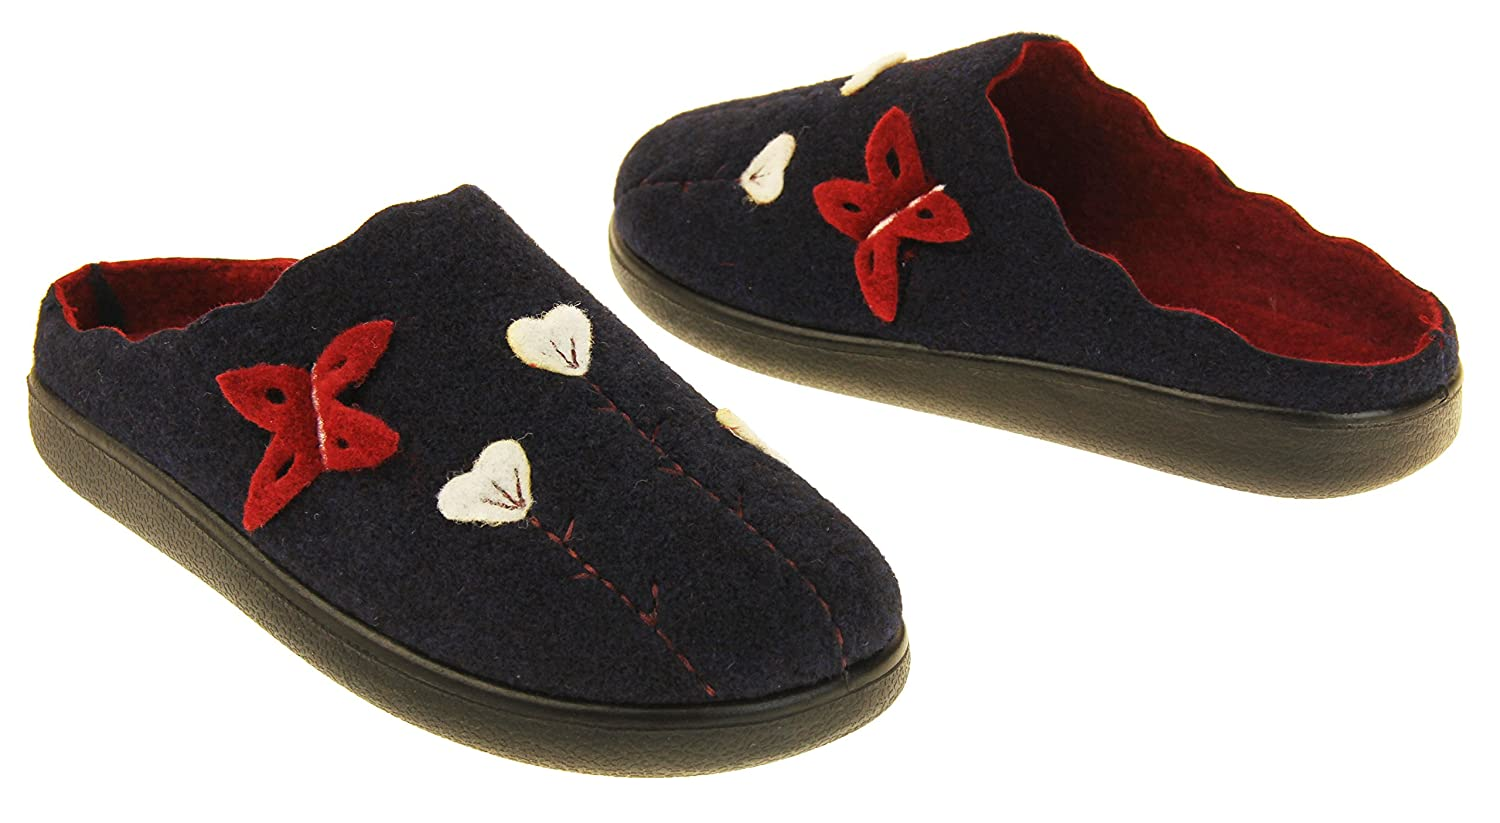 Coolers Womens Navy /& Burgundy Butterfly Felt Mules Slippers US 6